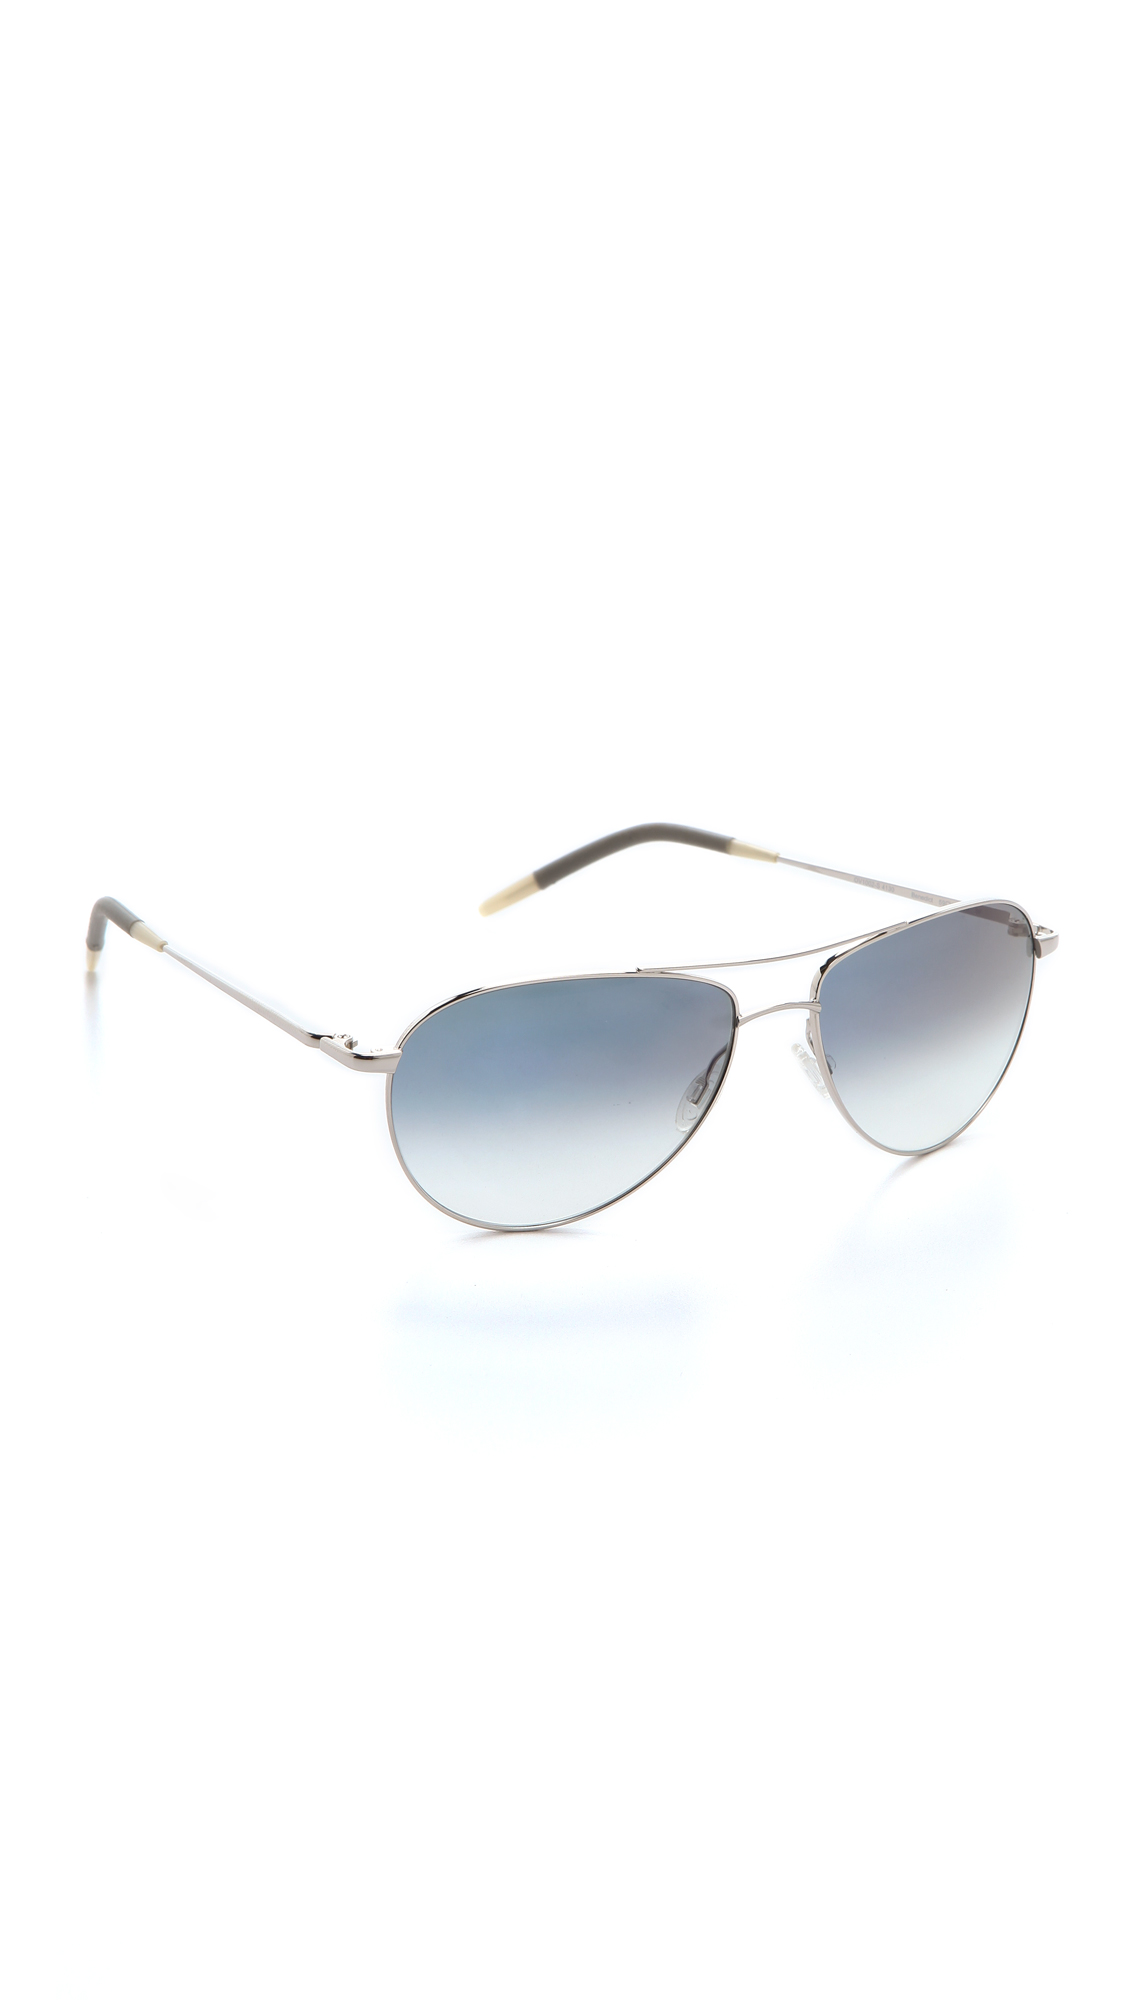 Oliver Peoples Eyewear Benedict Photochromic Sunglasses | SHOPBOP